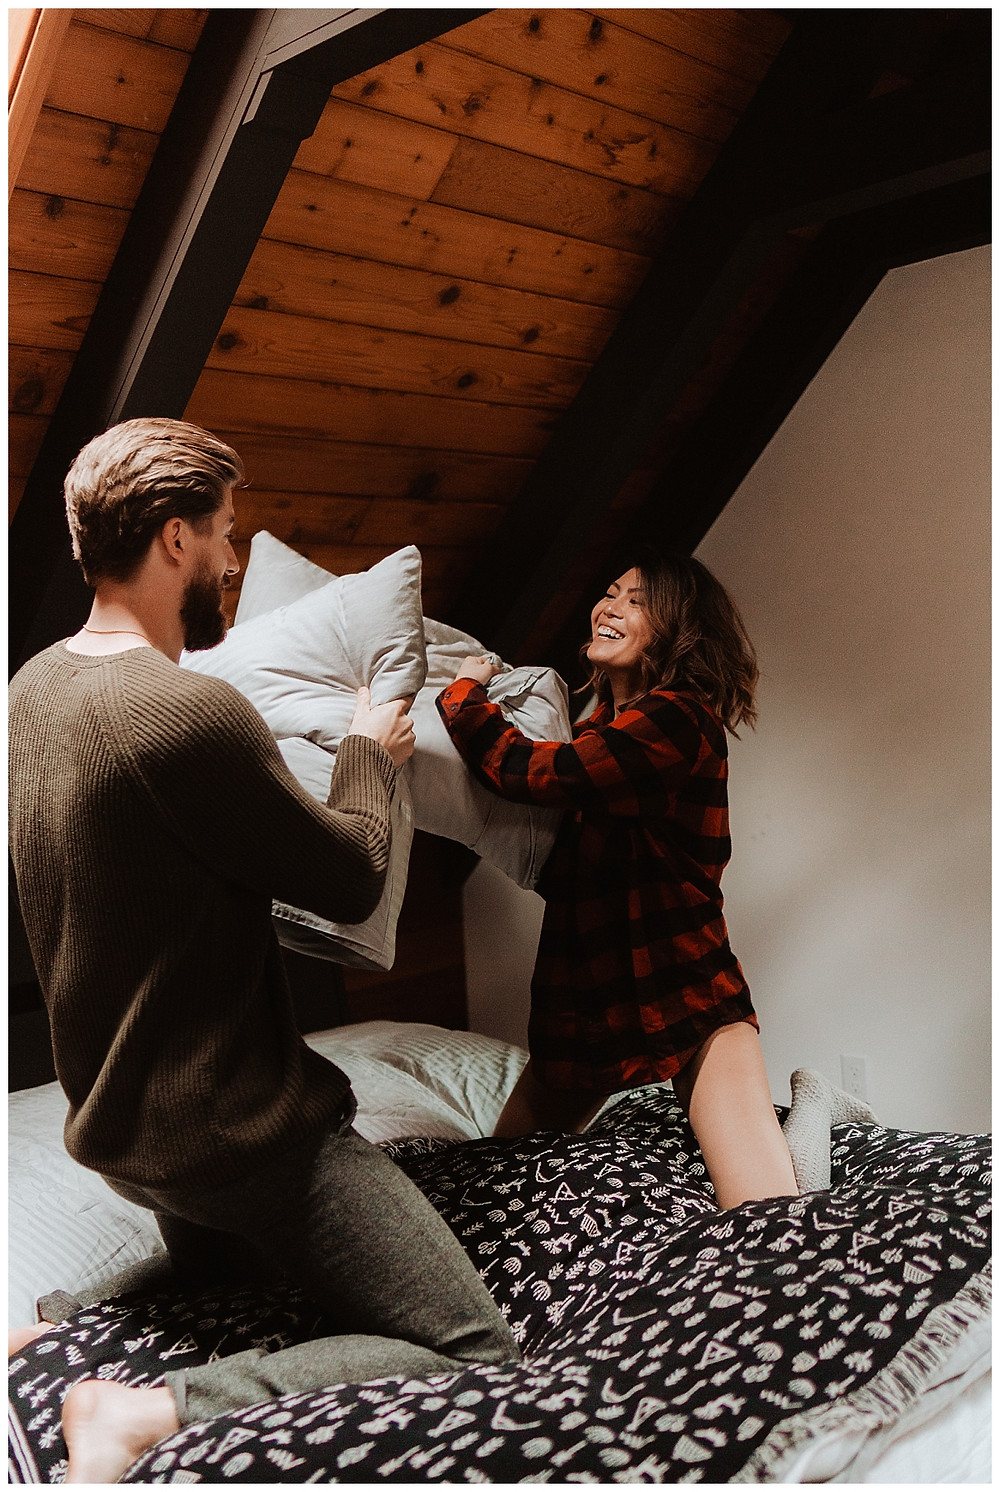 Cozy Cabin Pillow Fight Adventure Engagement Session in Canada